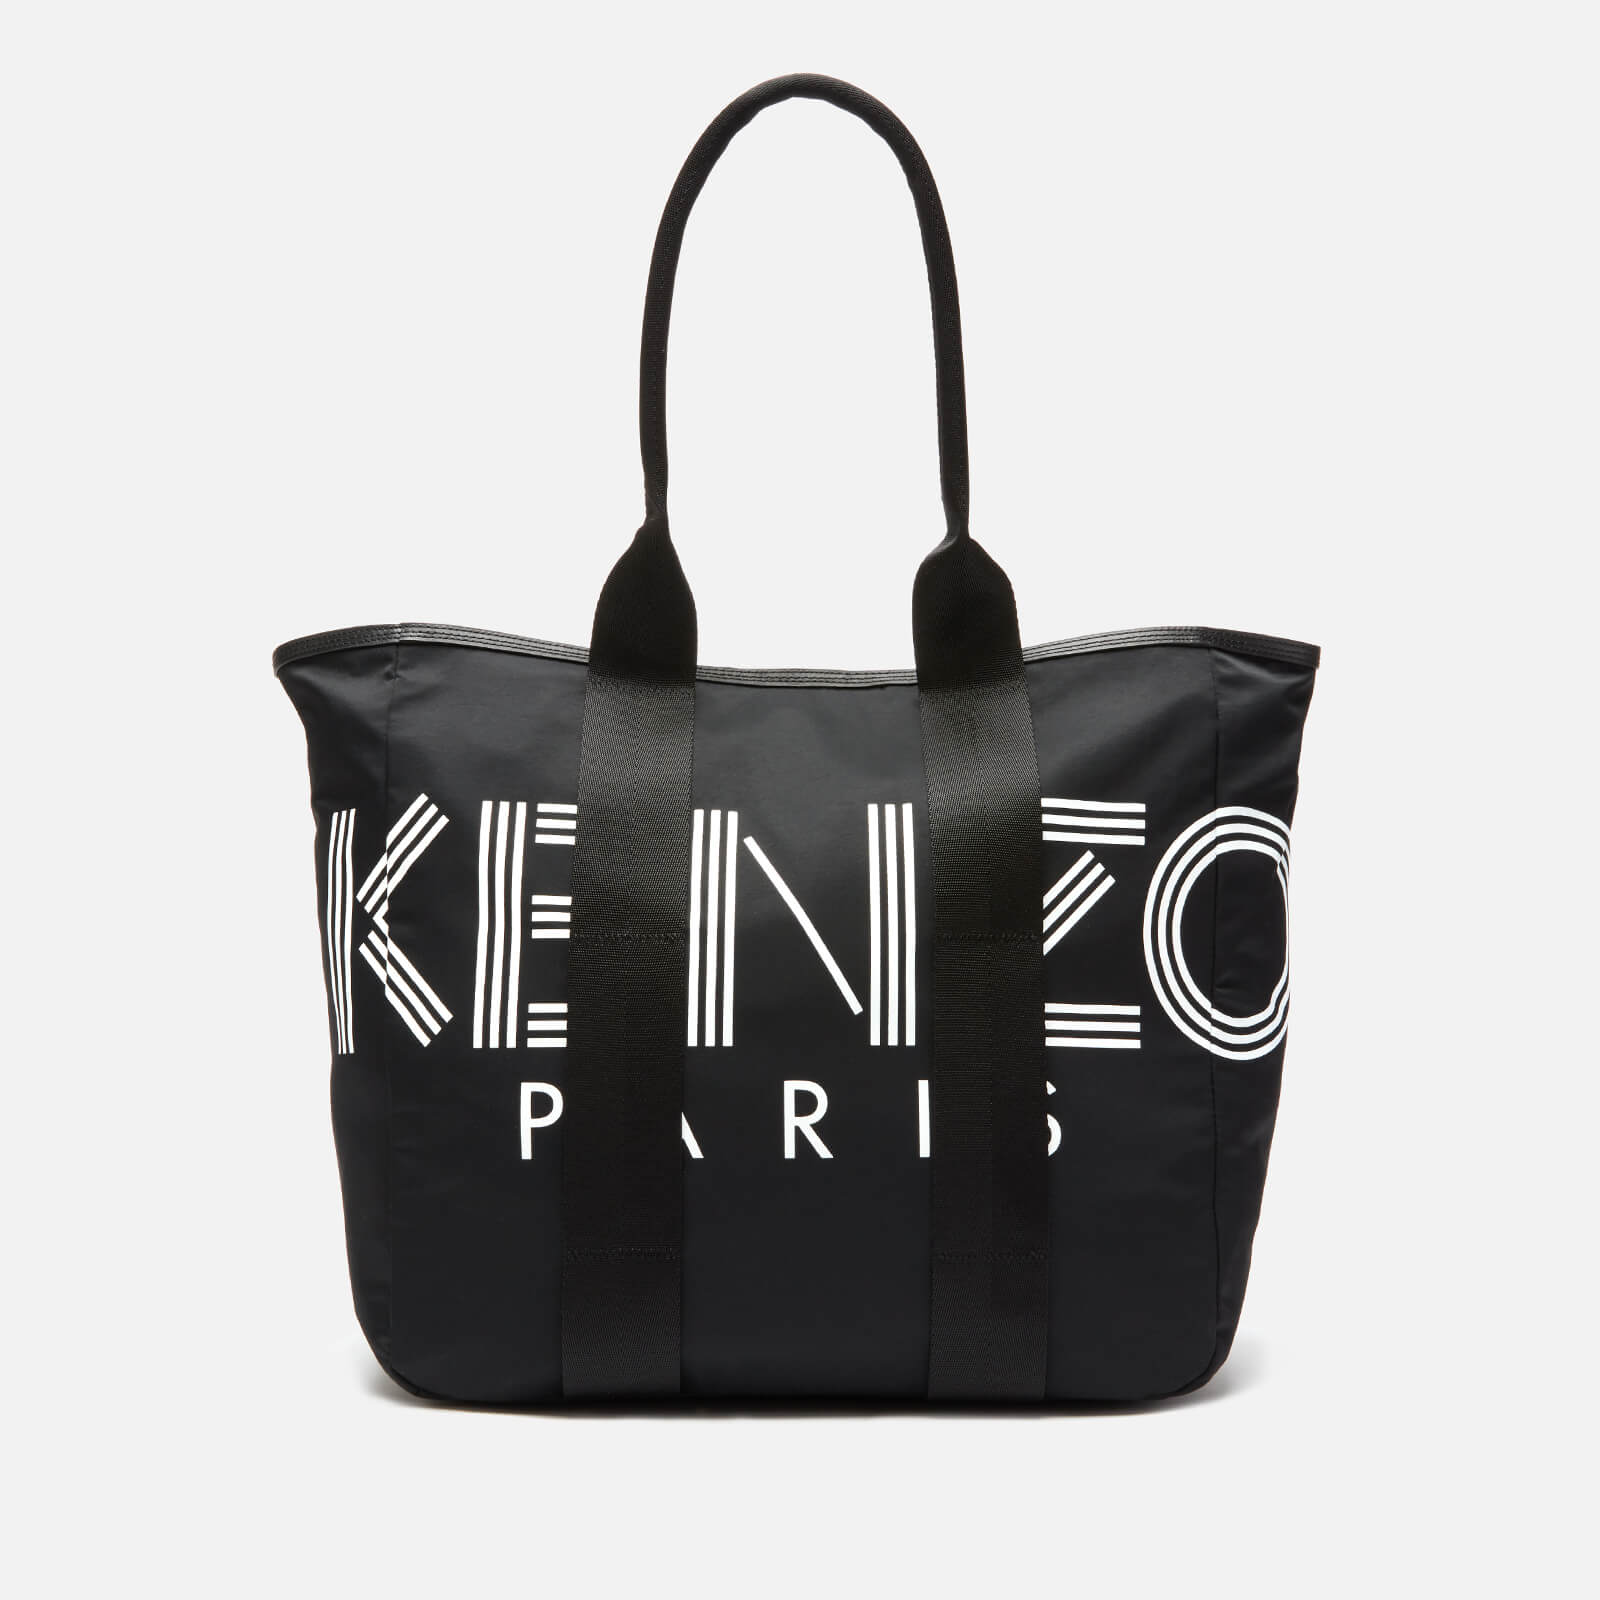 8bc00c5e9e7 KENZO Women's Large Nylon Paris Logo Tote Bag - Black